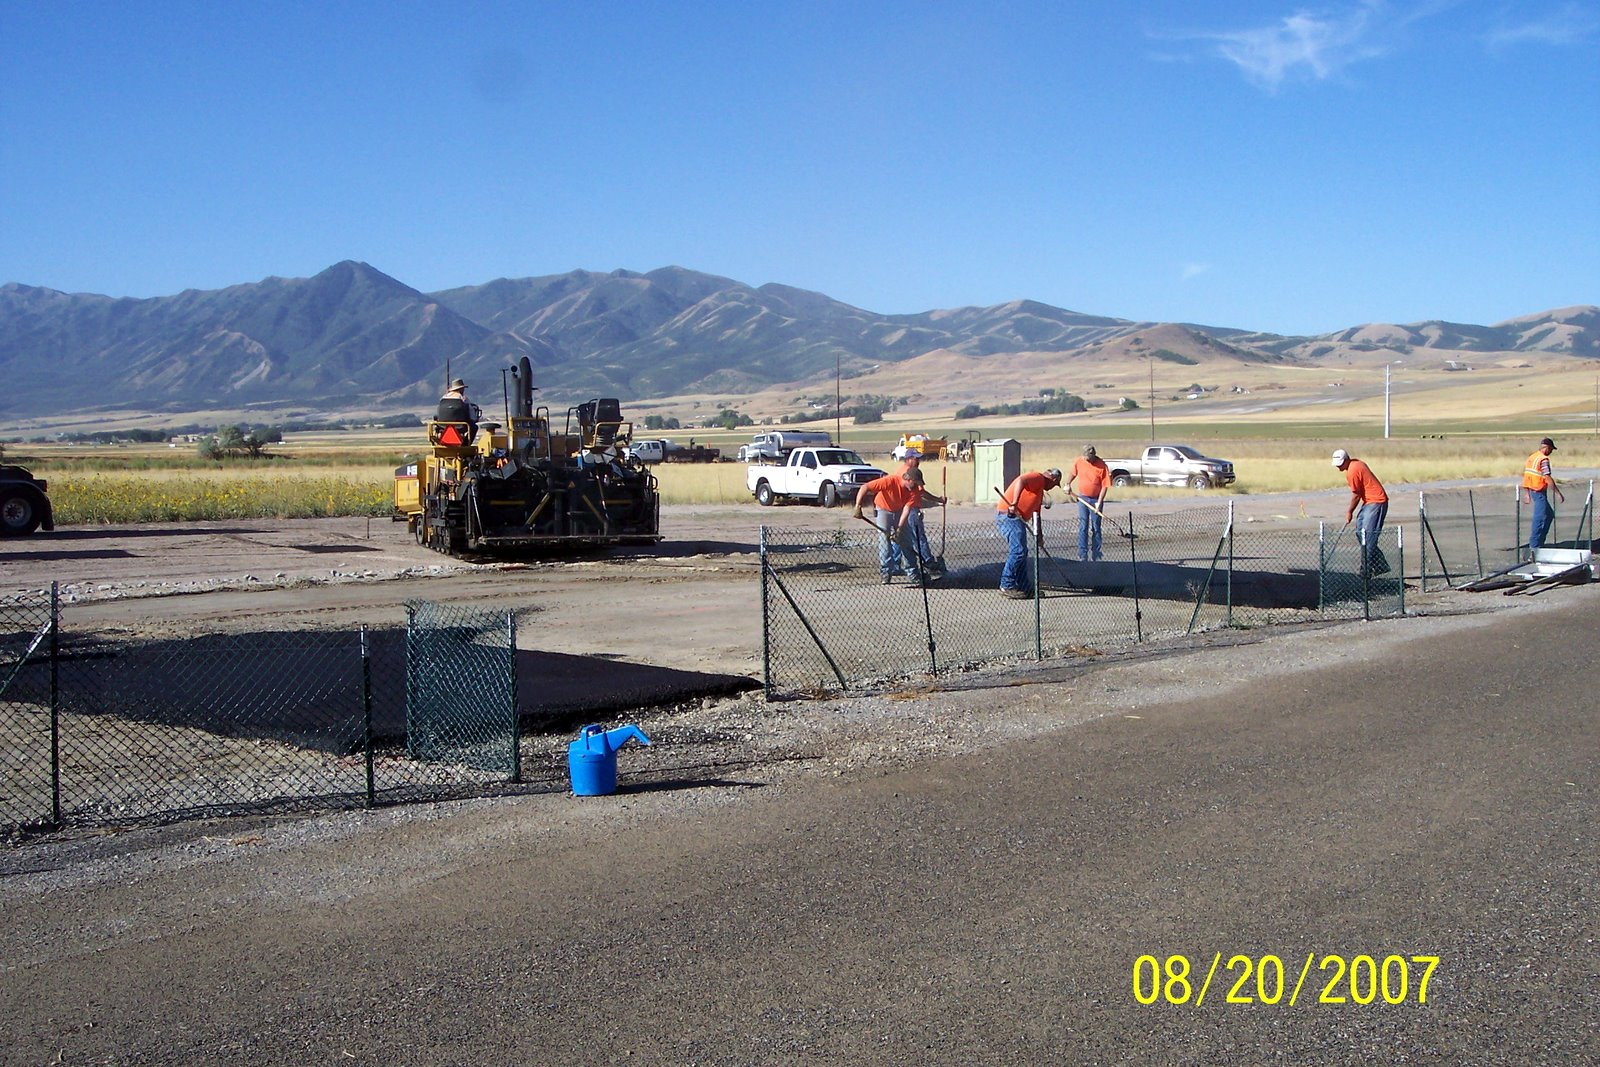 THE TAXIWAYS ARE COMPLETED FIRST.